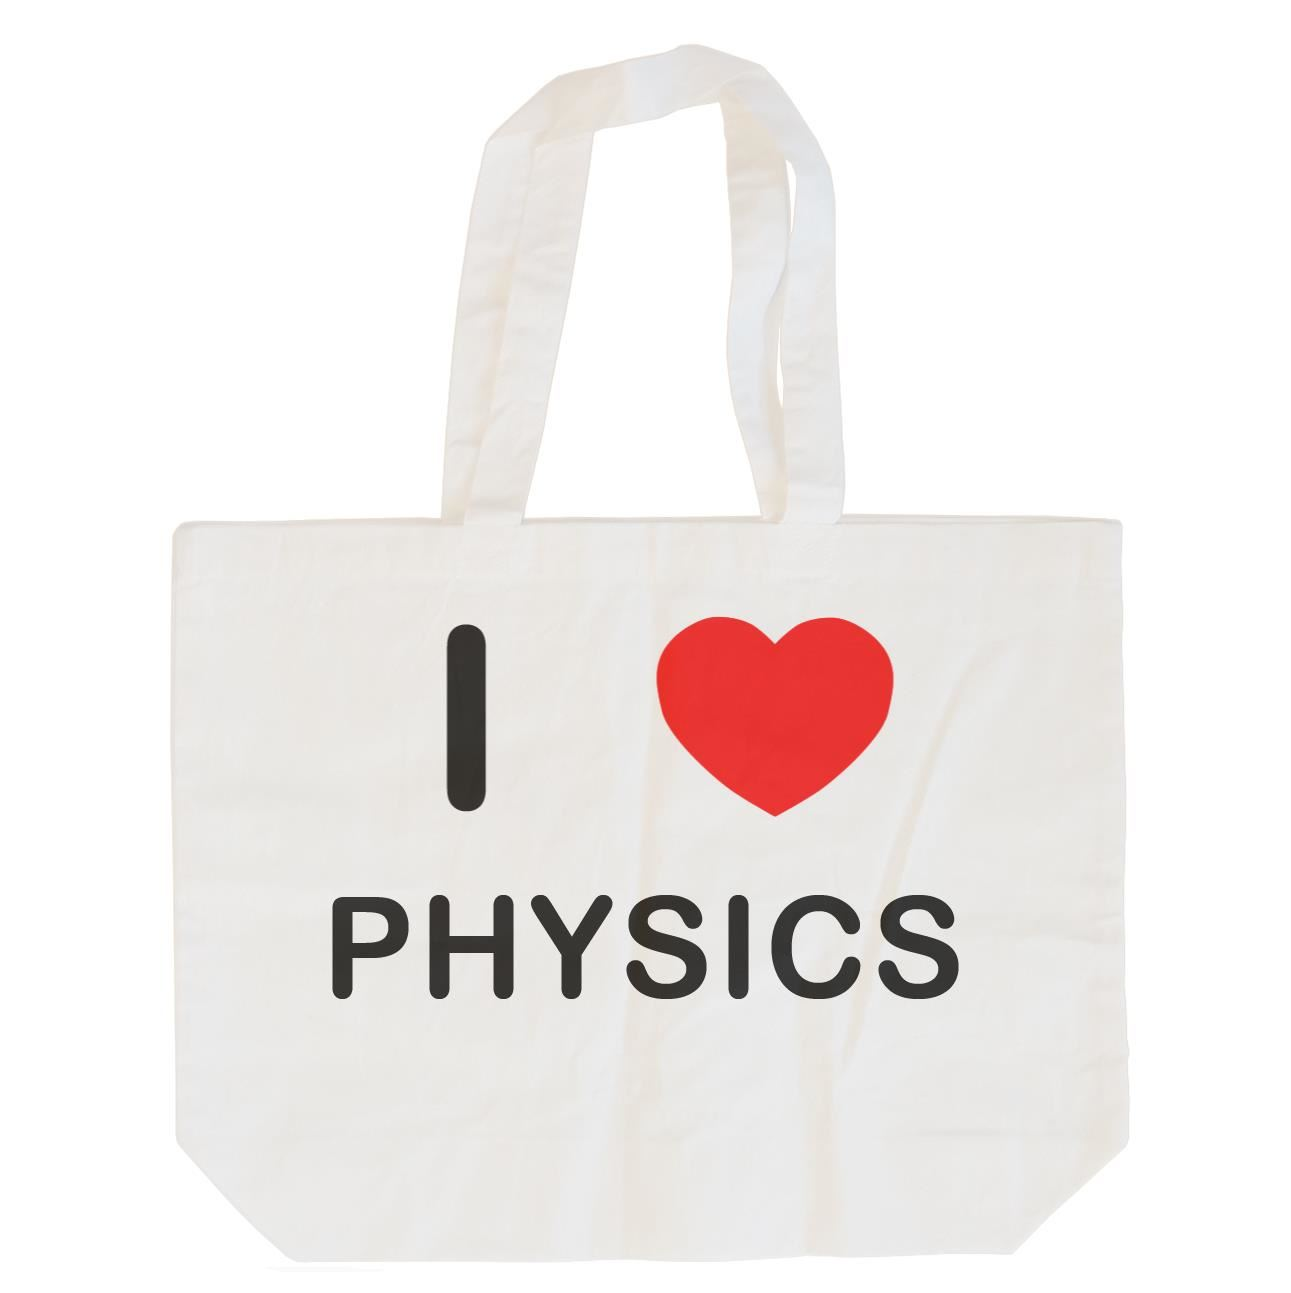 I Love Physics - Cotton Bag | Size choice Tote, Shopper or Sling